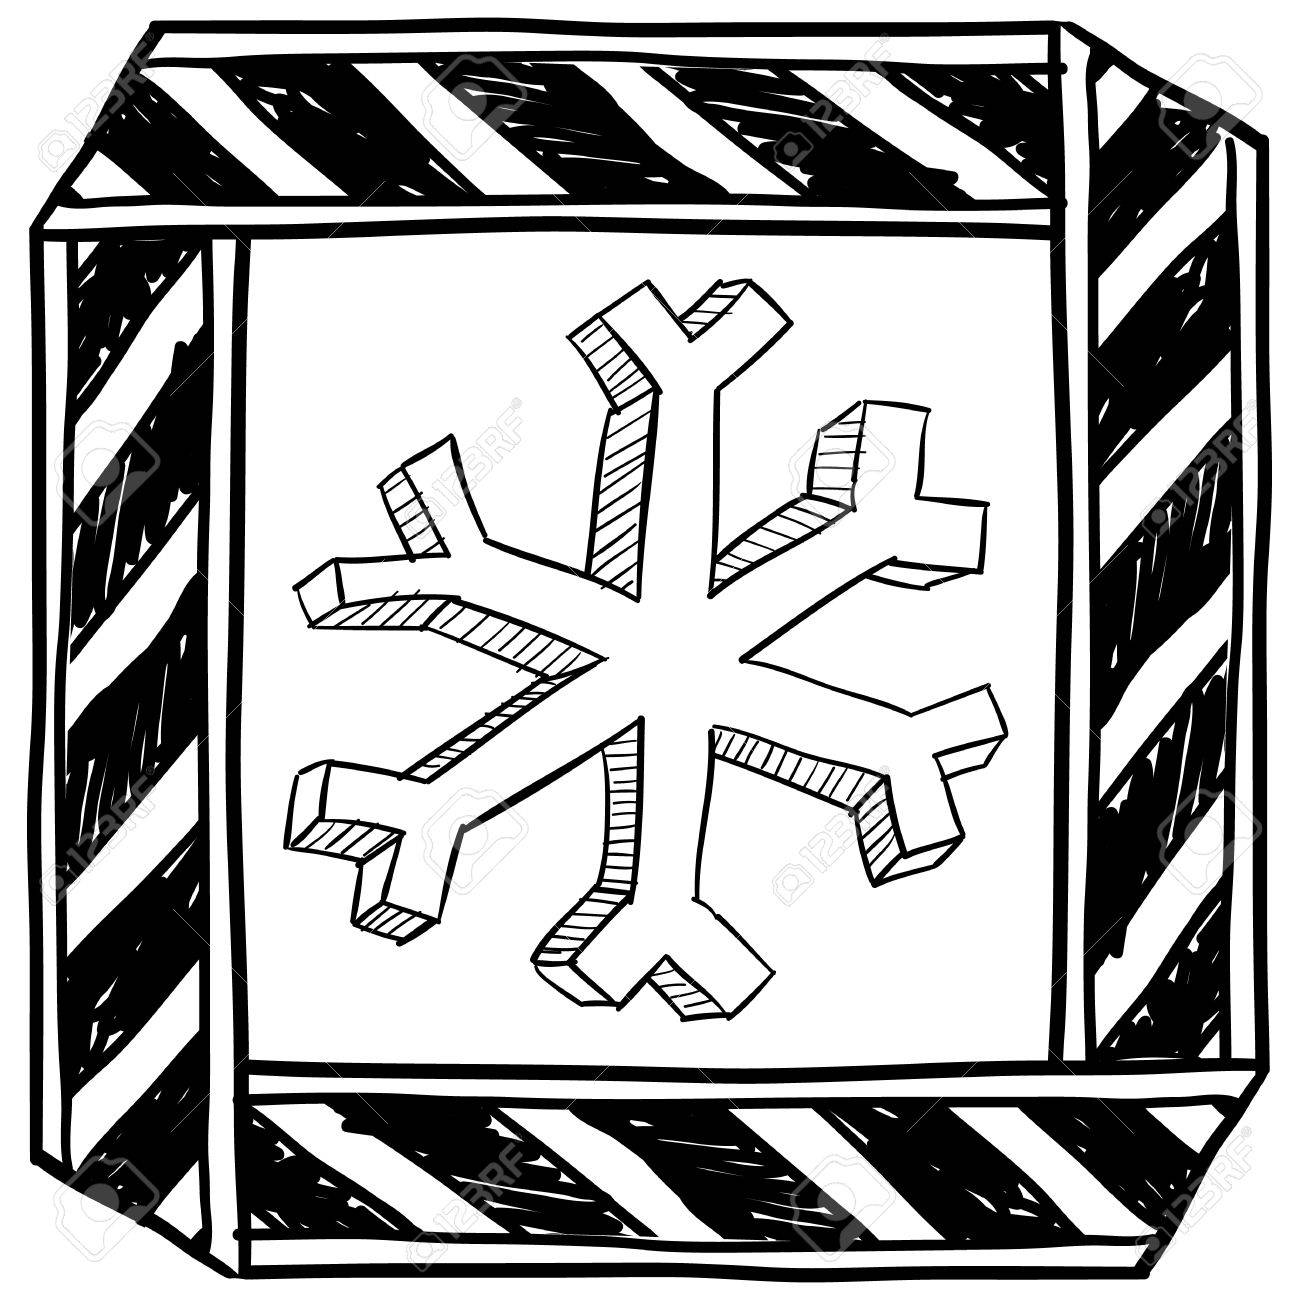 1299x1300 Doodle Style Danger Of Freezing Caution Sign Sketch In Vector